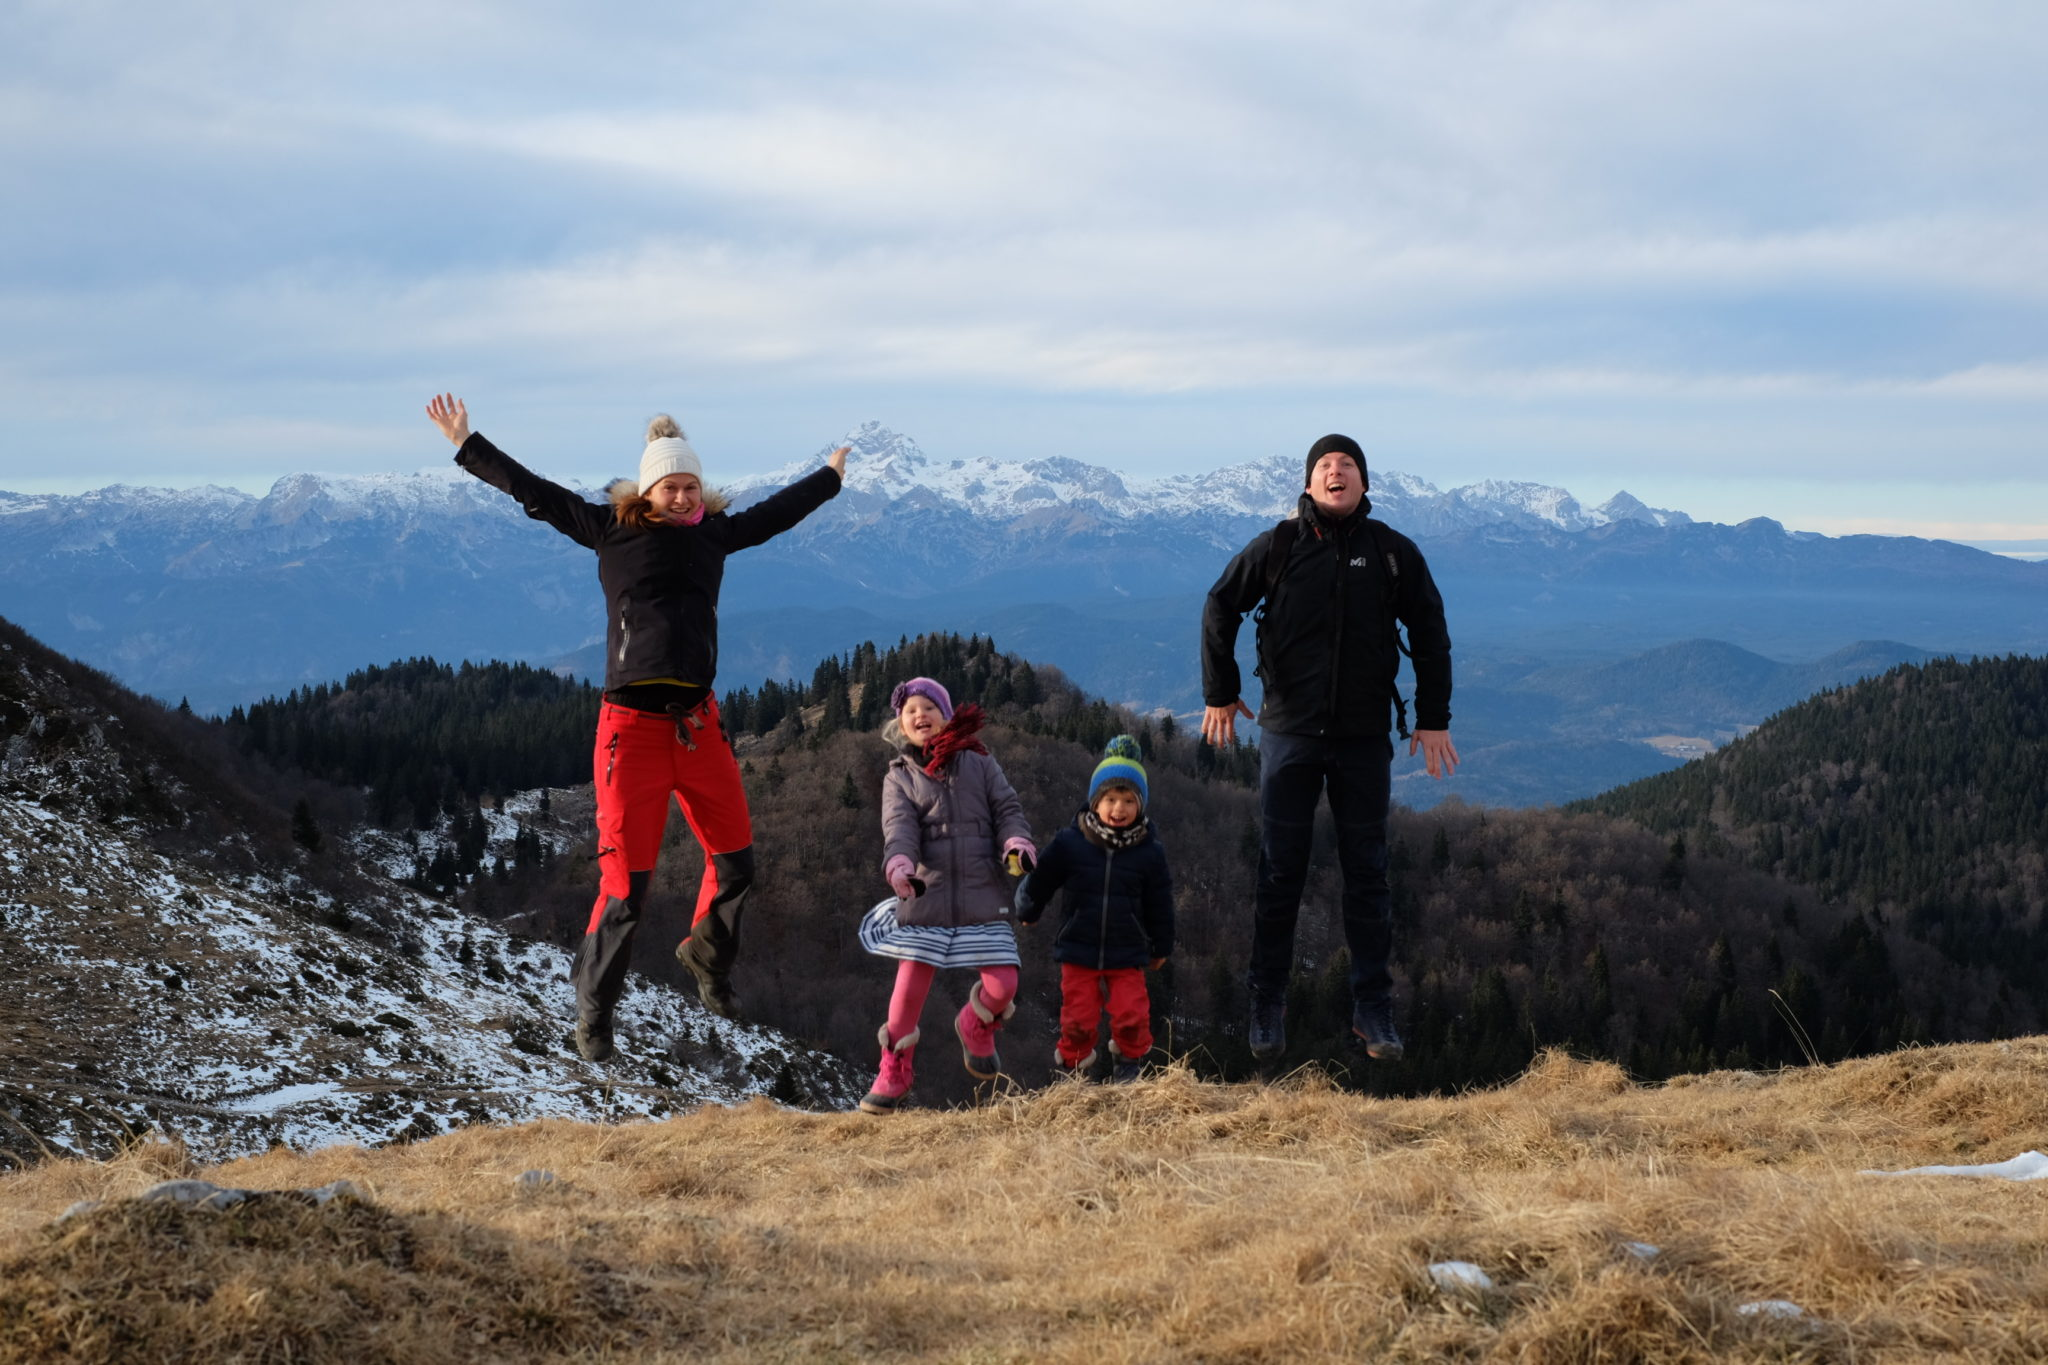 A family in the mountains, Slovenia